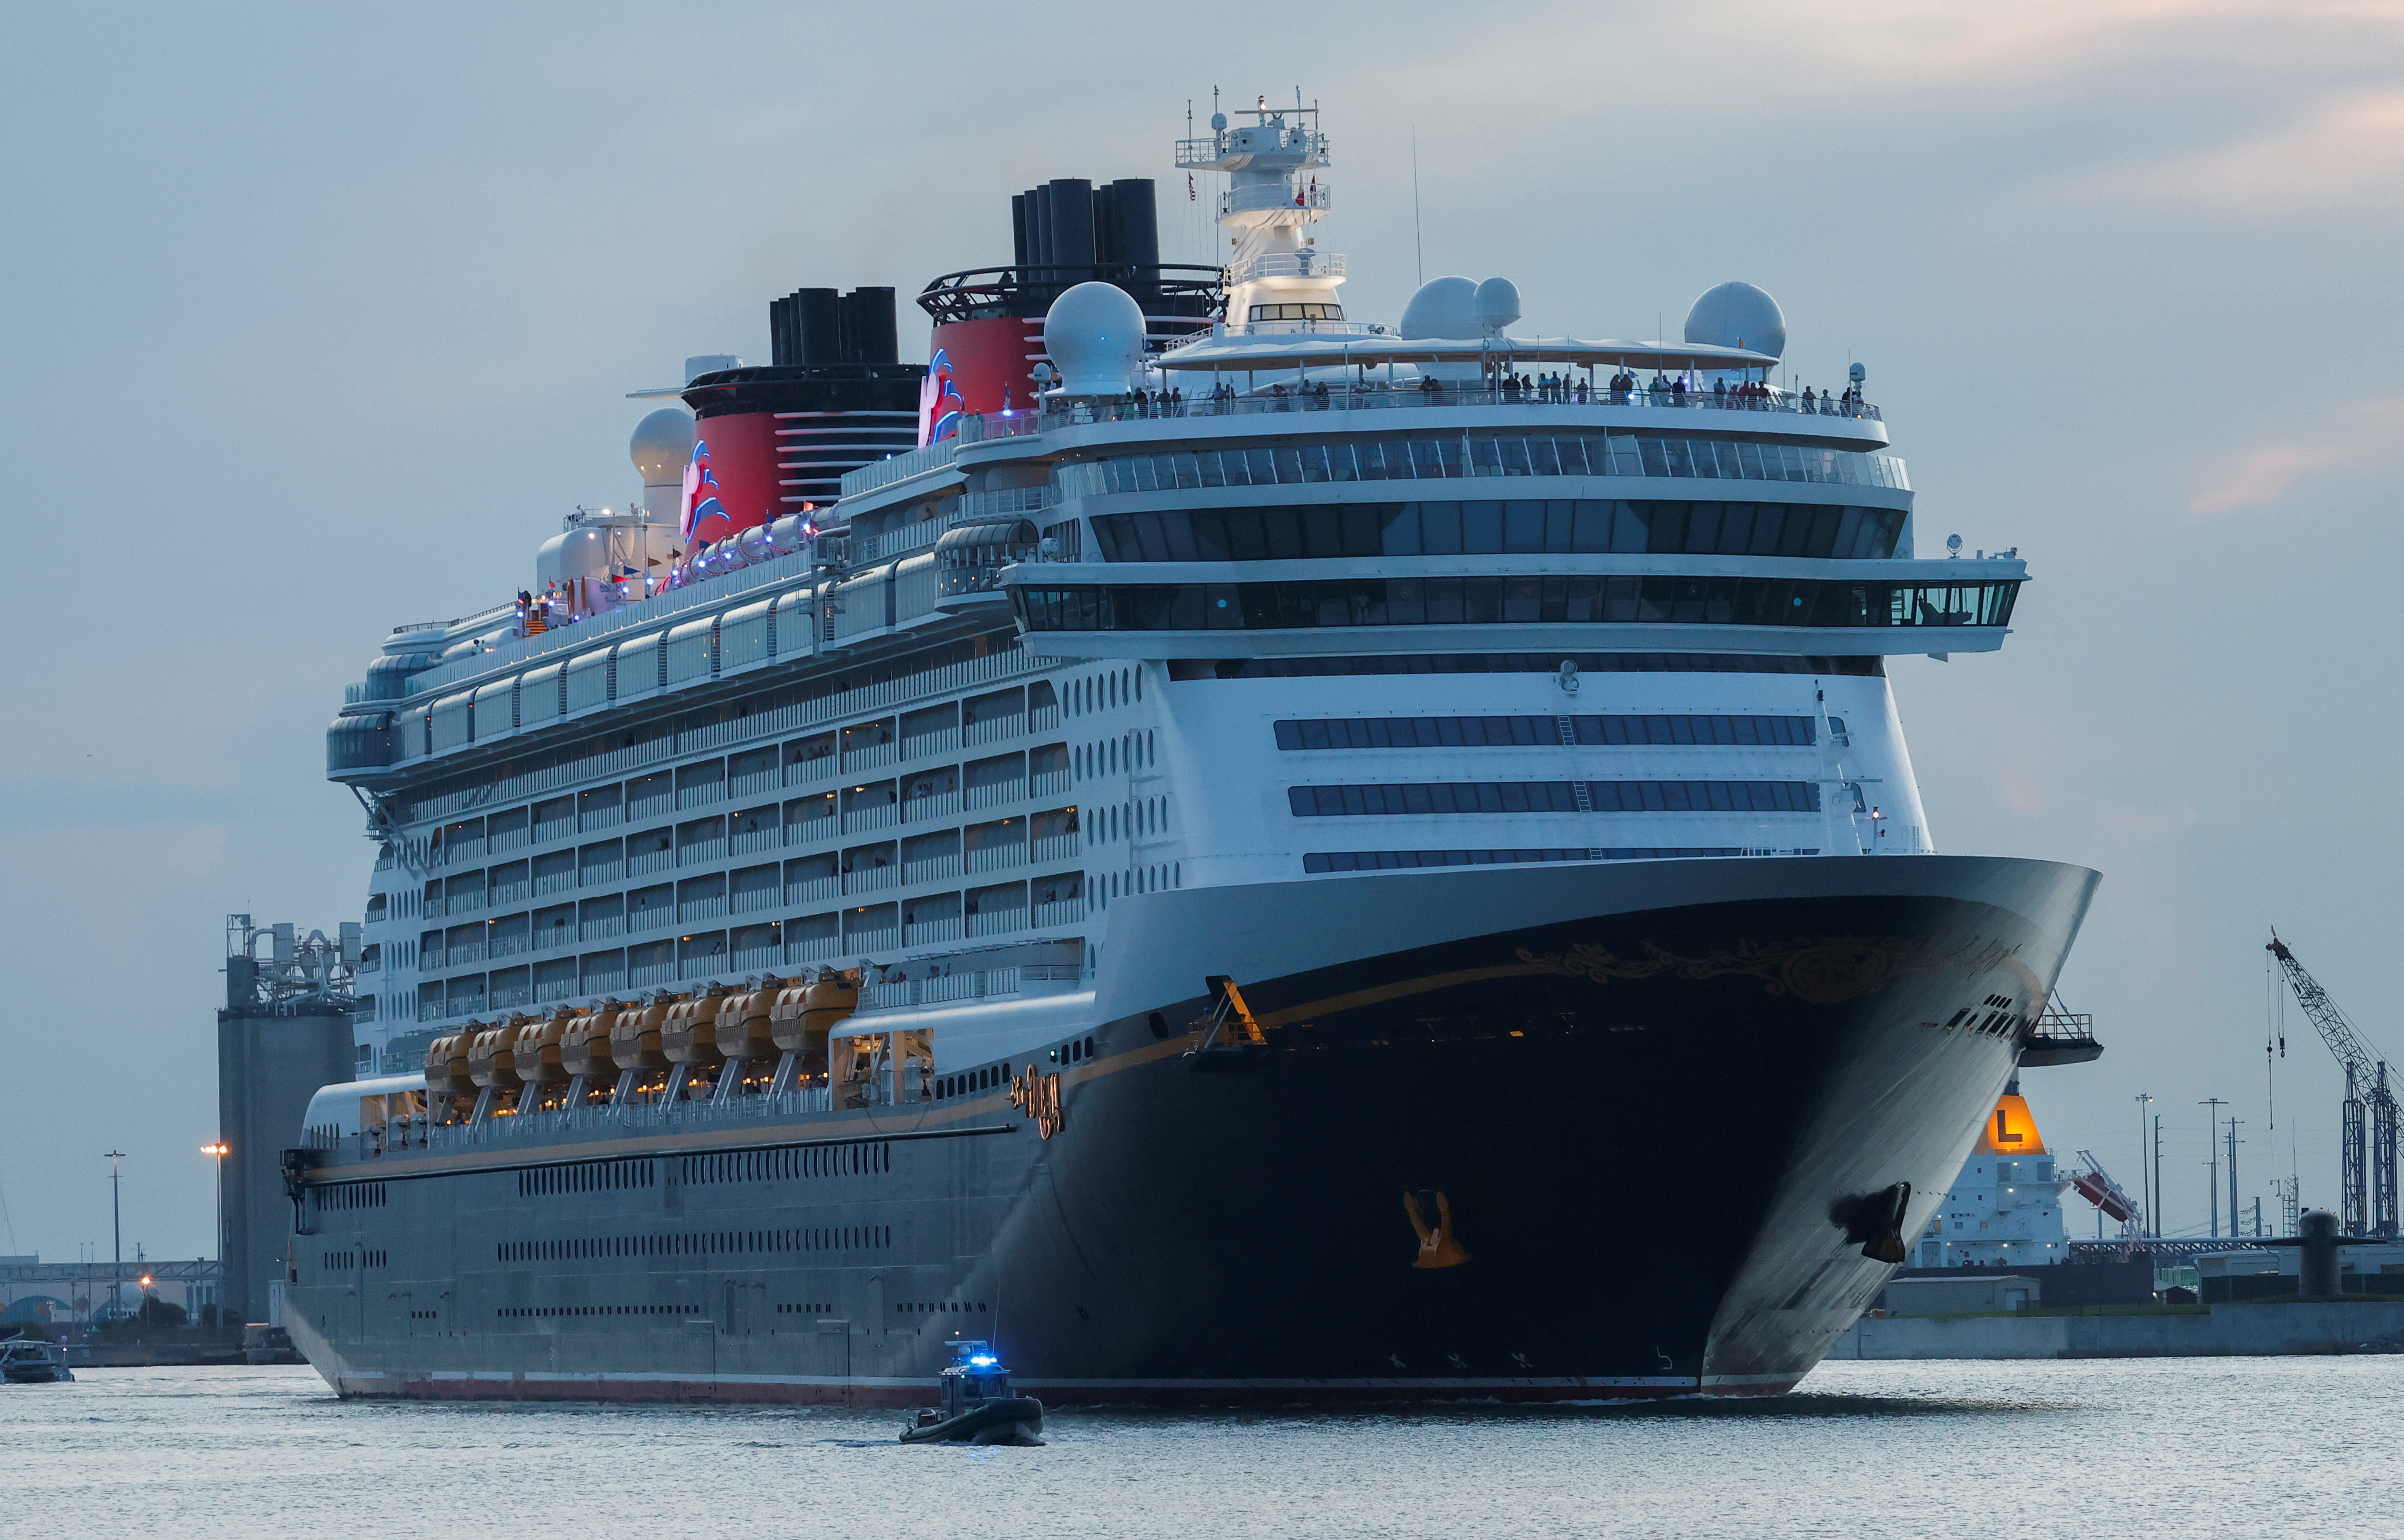 Disney Dream, a Disney Cruise Lines' ship, sails to the Bahamas on the first Disney cruise for paying customers since they were stopped during the coronavirus disease (COVID-19) pandemic, from Port Canaveral in Florida, U.S., August 9, 2021. REUTERS/Joe Skipper